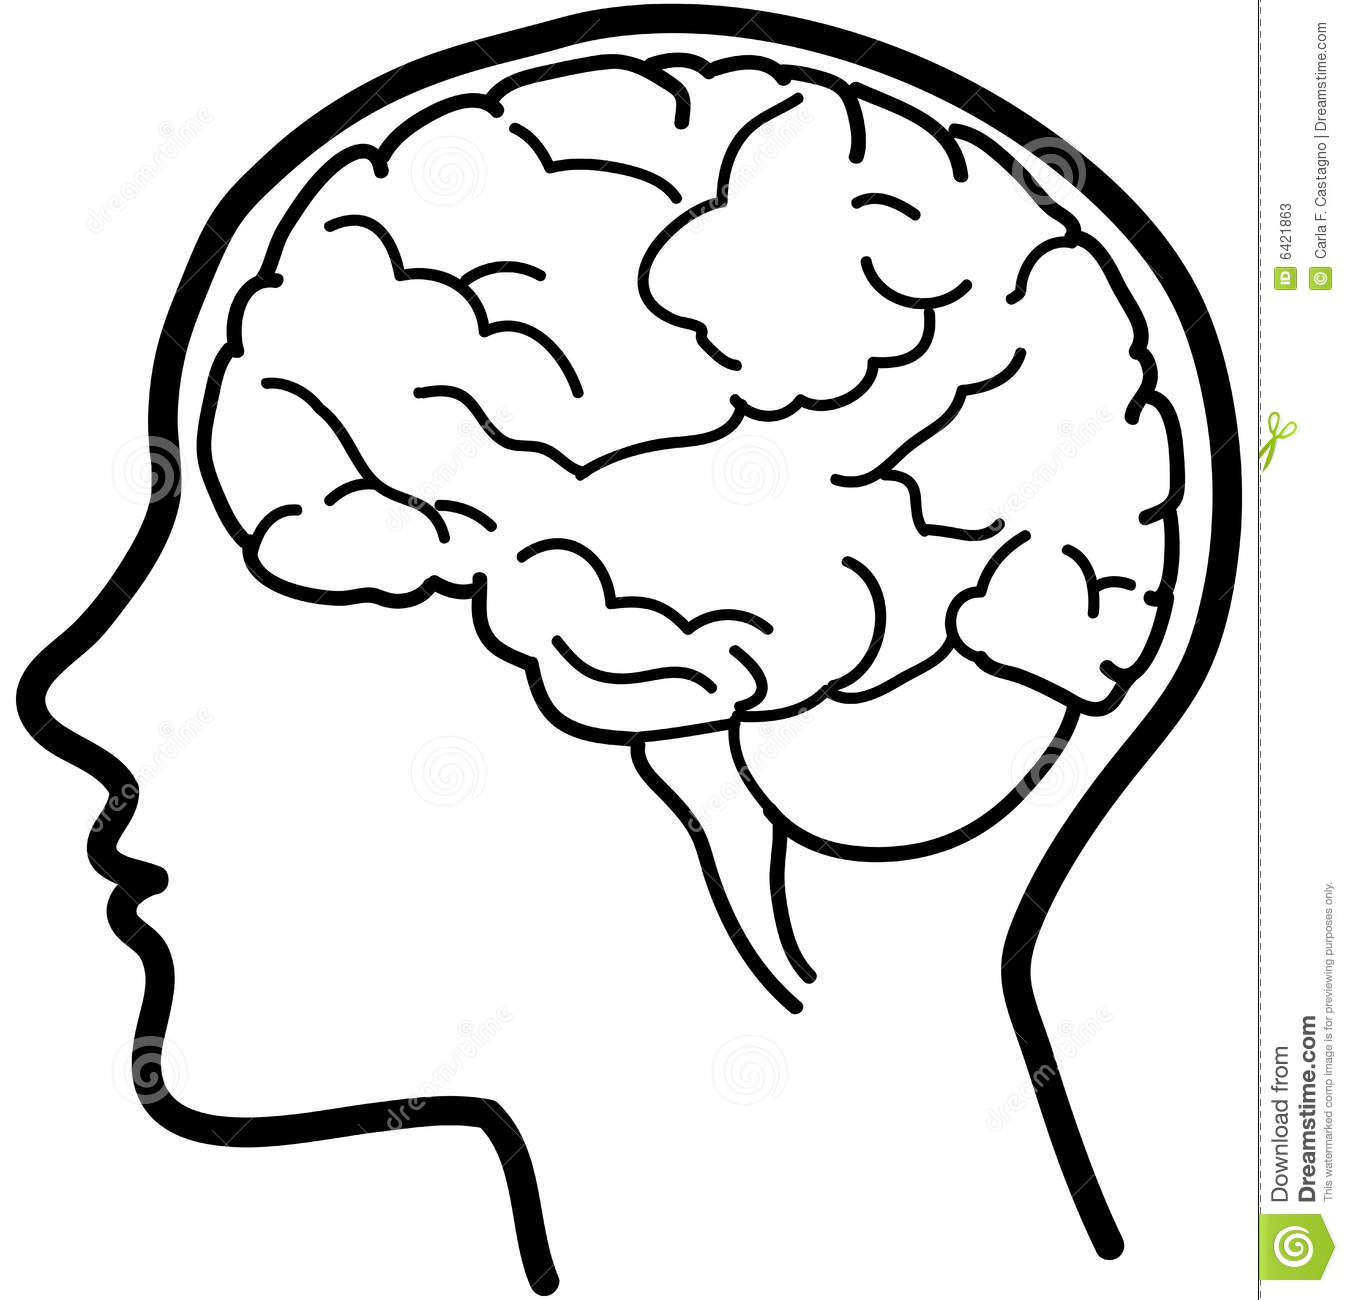 More similar stock images of ` Vector brain icon bw `: www.dreamstime.com/stock-photos-vector-brain-icon-bw-image6421863